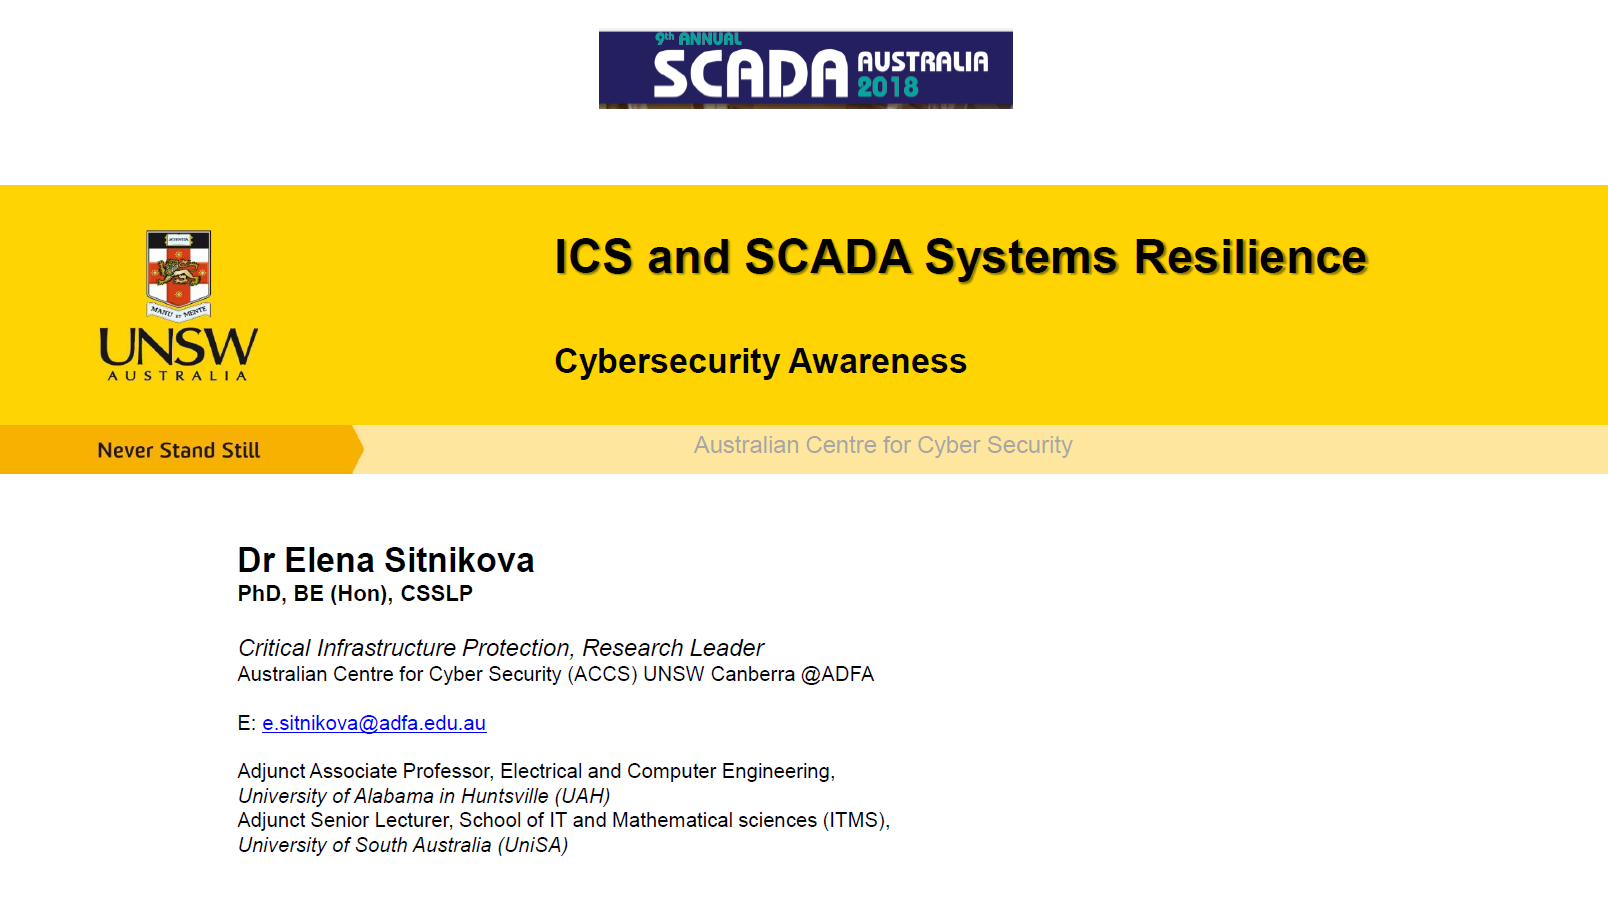 Increasing Security Awareness and Safeguards within ICS and SCADA Systems to Maximise Cyber Resilience